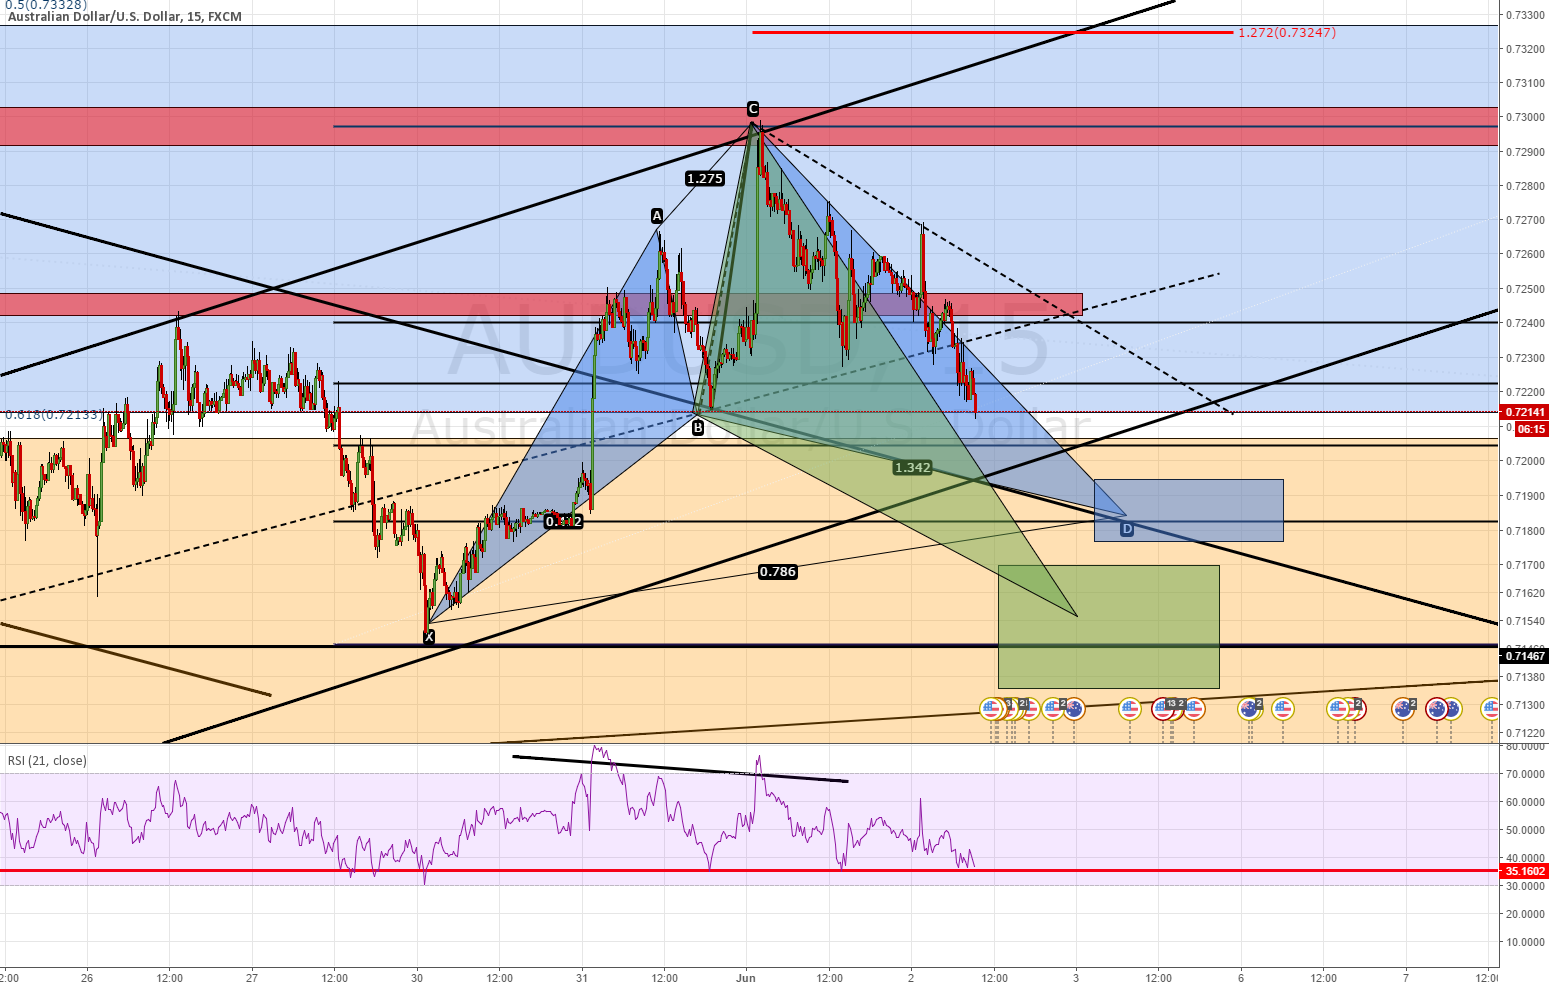 AUDUSD POT REVERSAL SETUPS NO SIGNIFICANT DIV FOR NOW